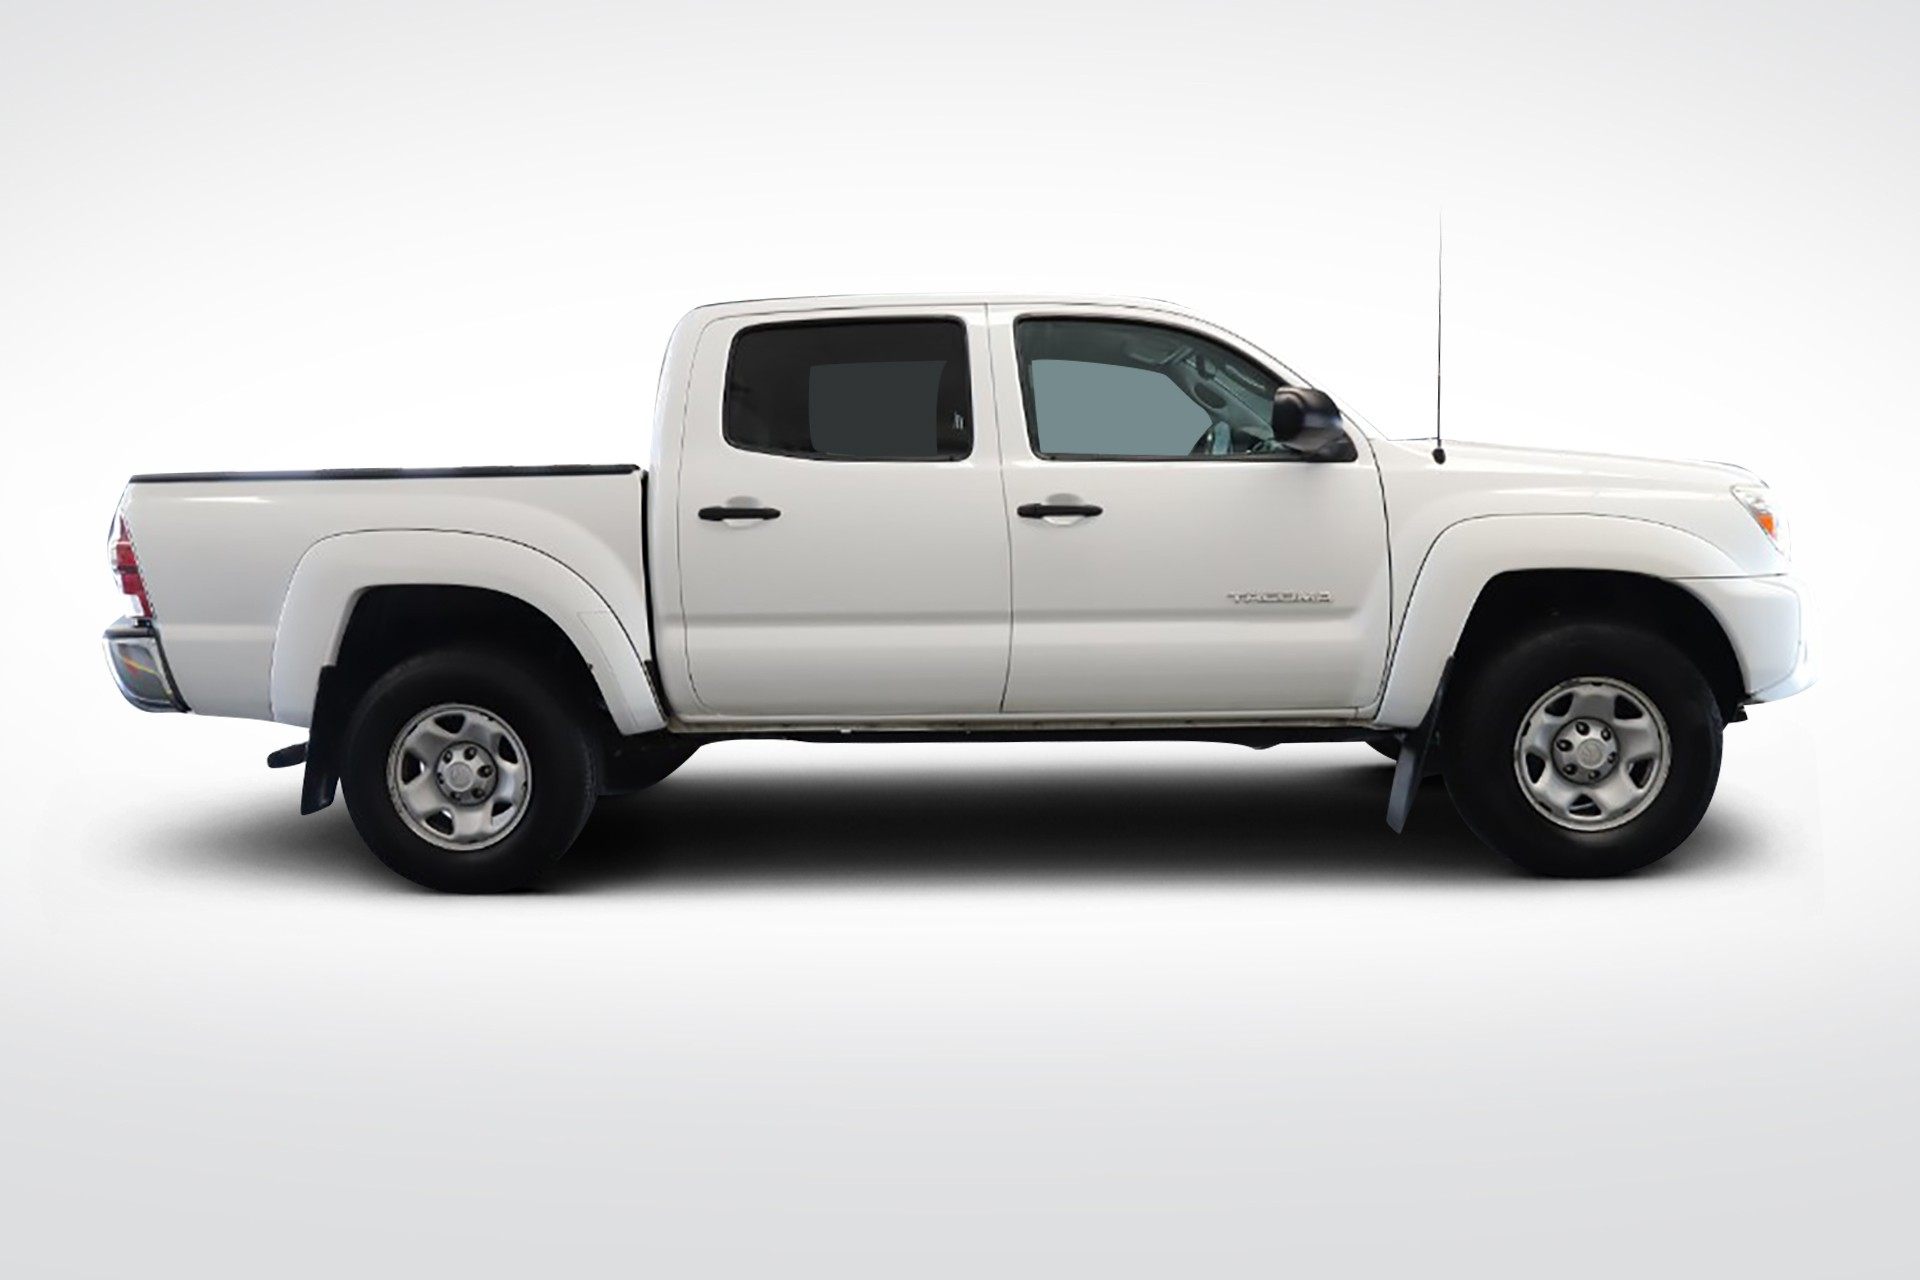 Toyota Tacoma's Full Review: Price, Capacity and More